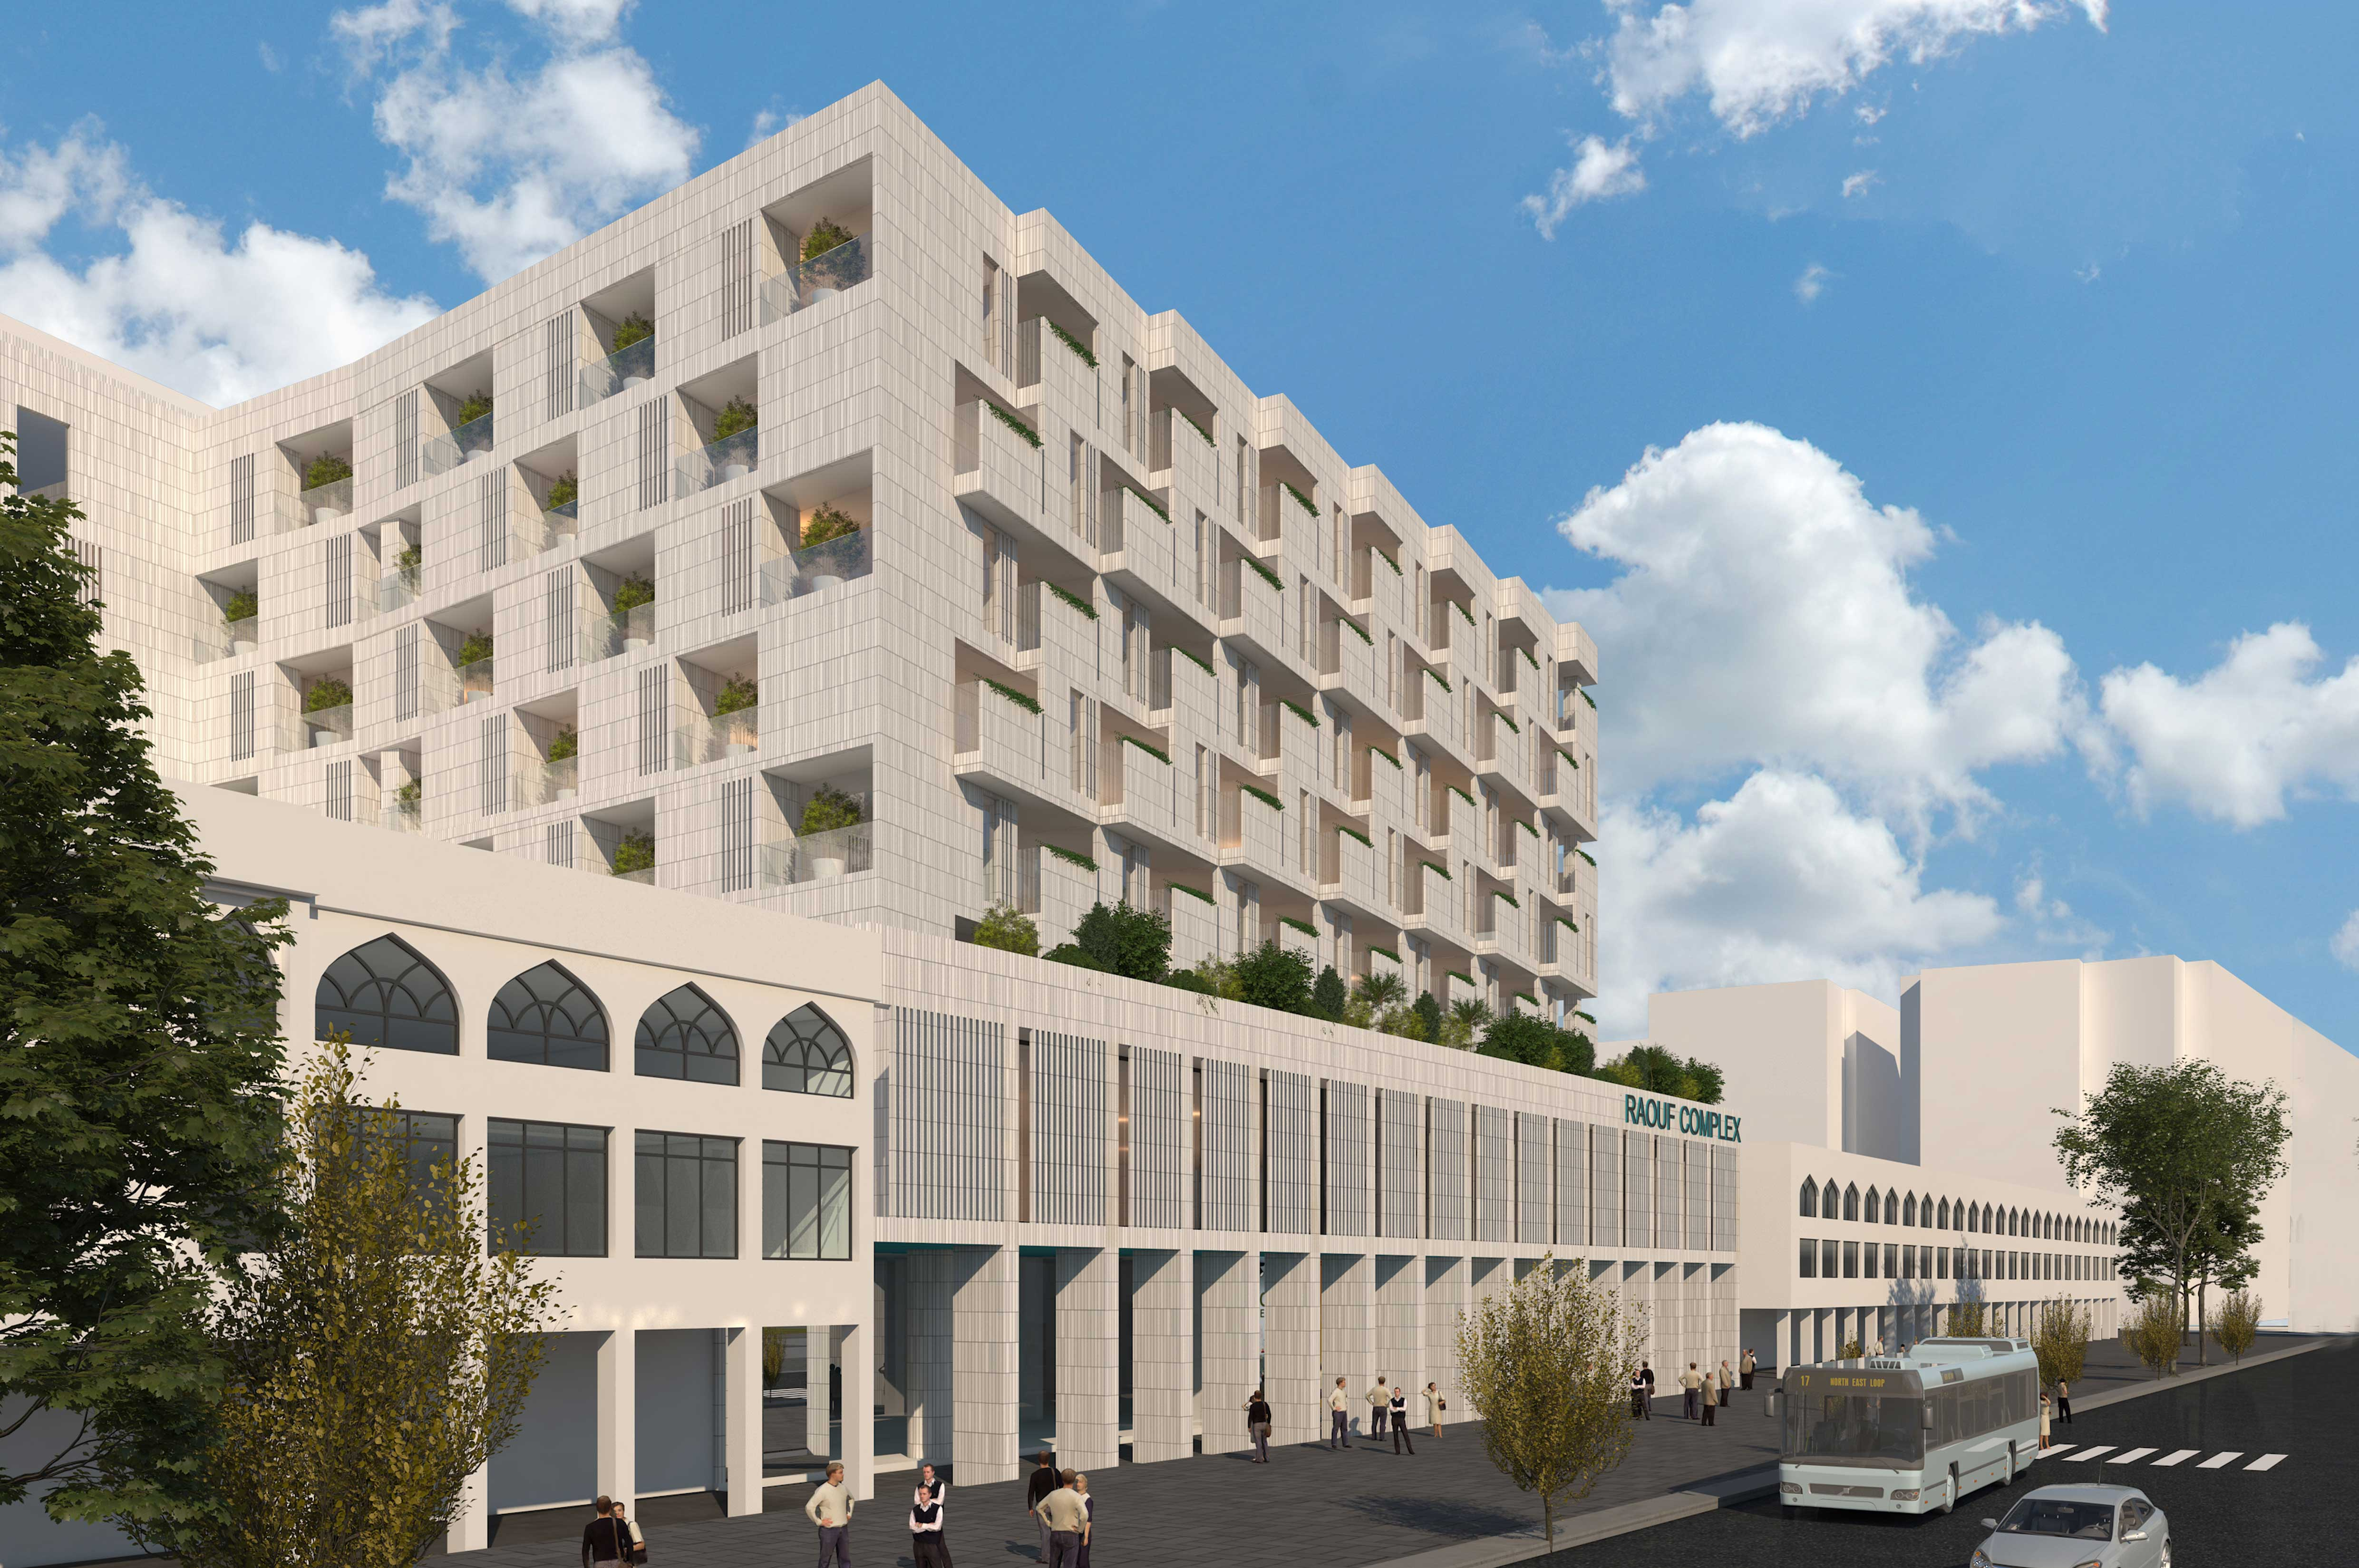 15- Raouf Mixed-Use Building